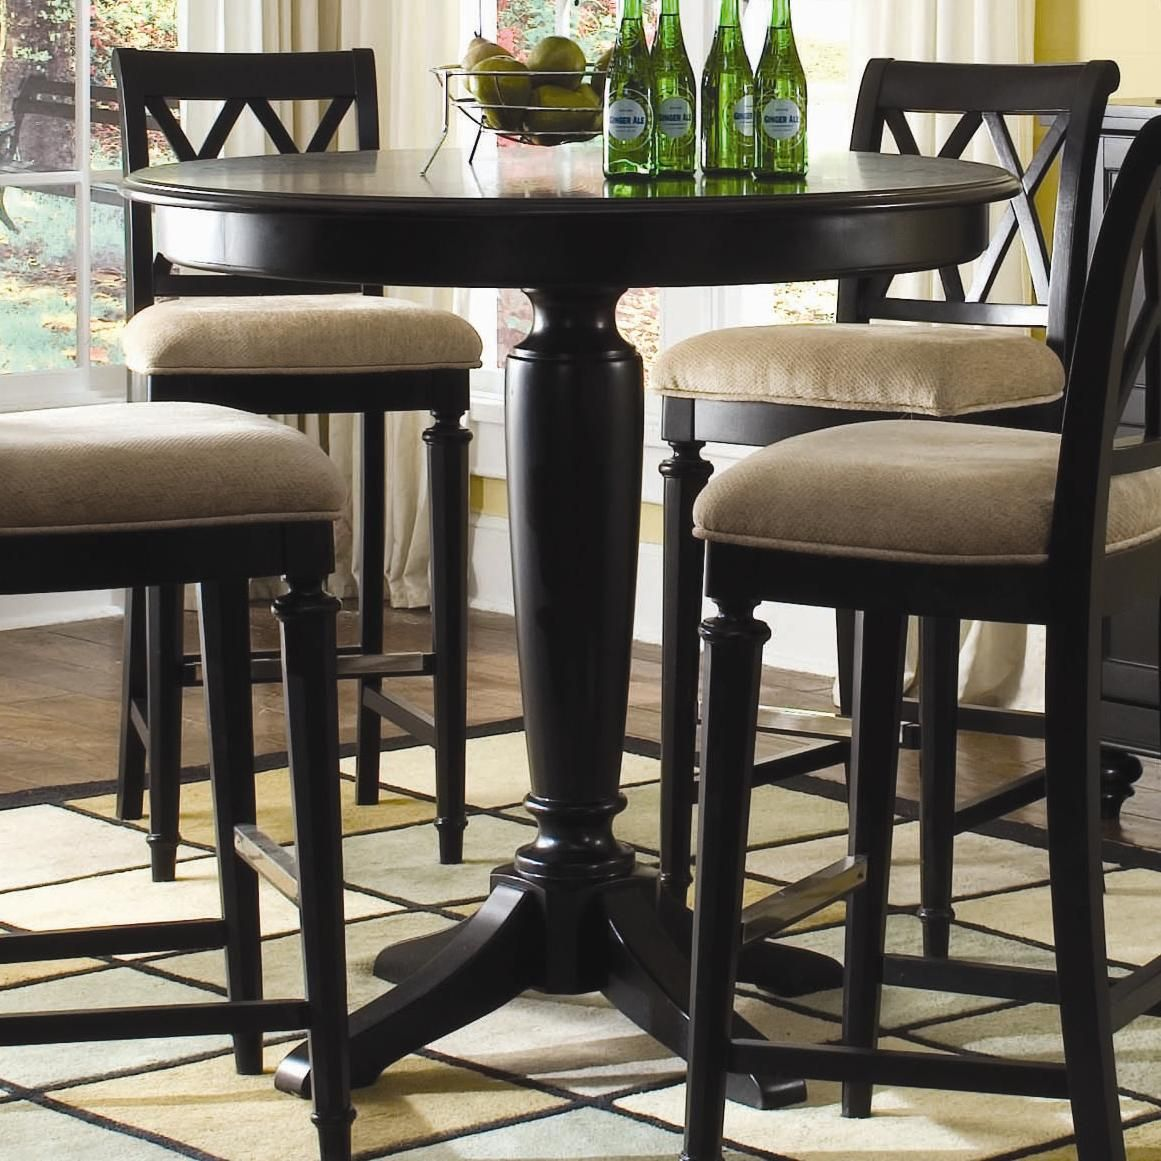 High Table And Chairs For Kitchen Double Folding Chair With Umbrella American Drew Camden Dark 42 Round Bar Height Item Number 919 706 B03